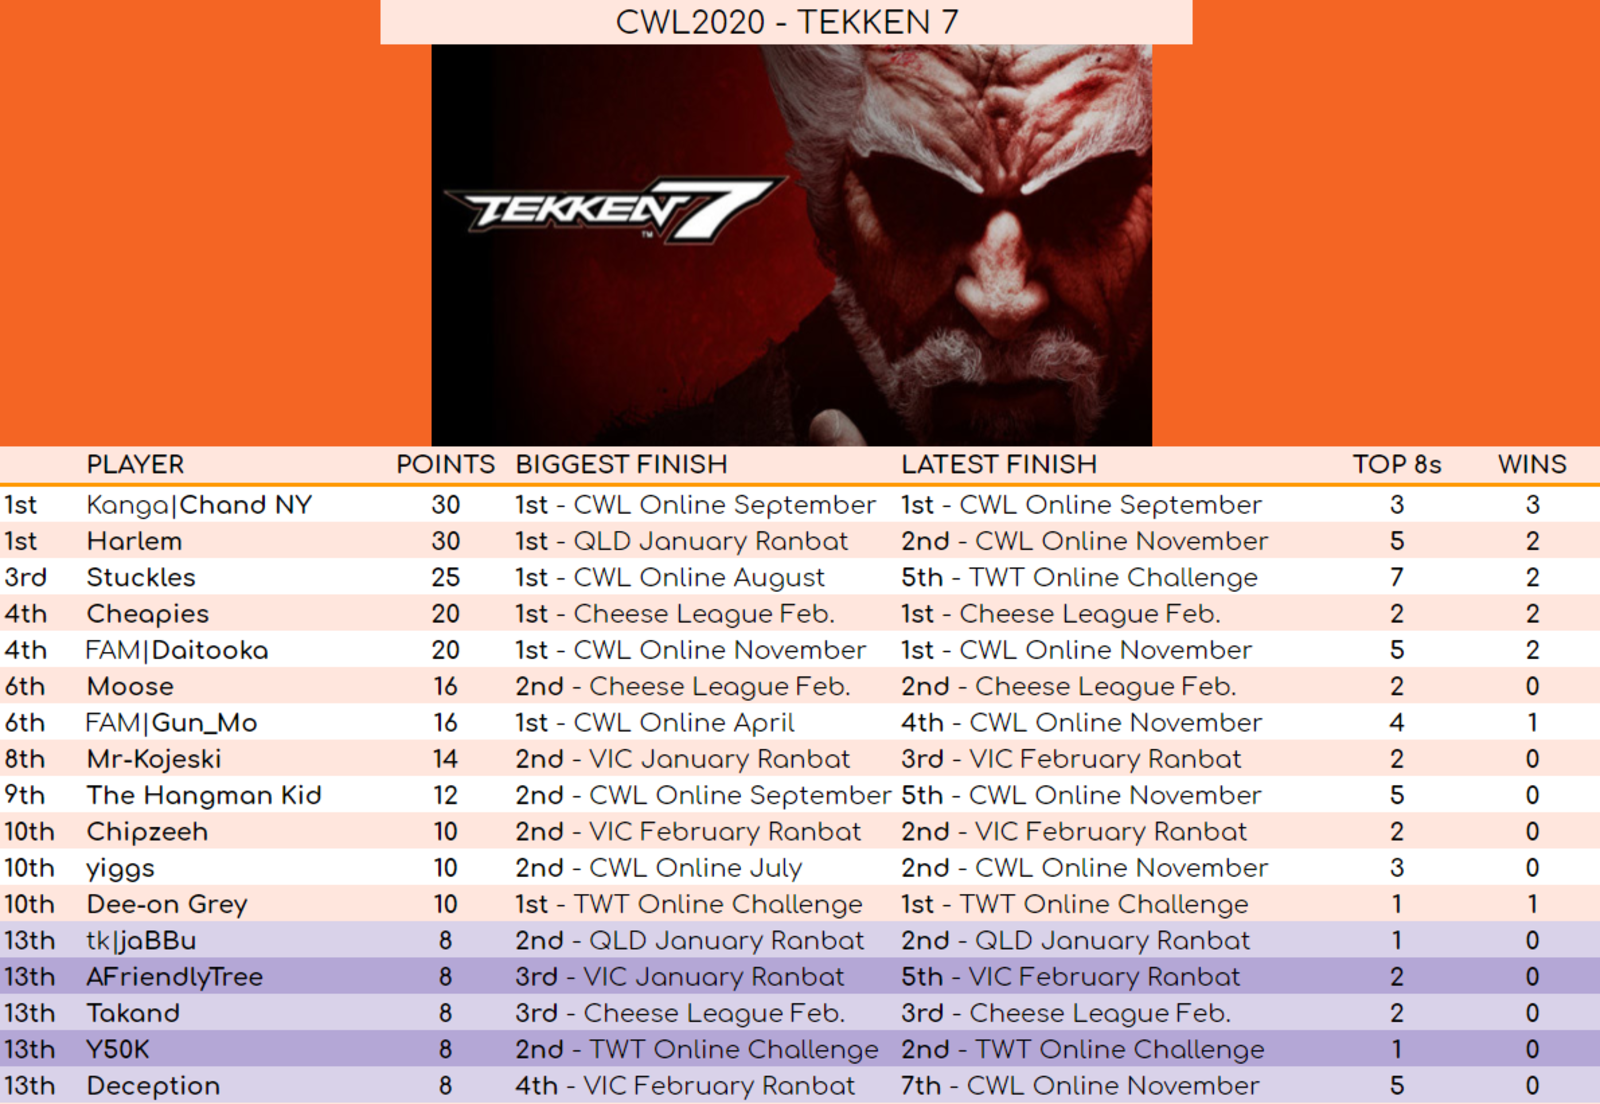 Final rankings for CWL Tekken 2020